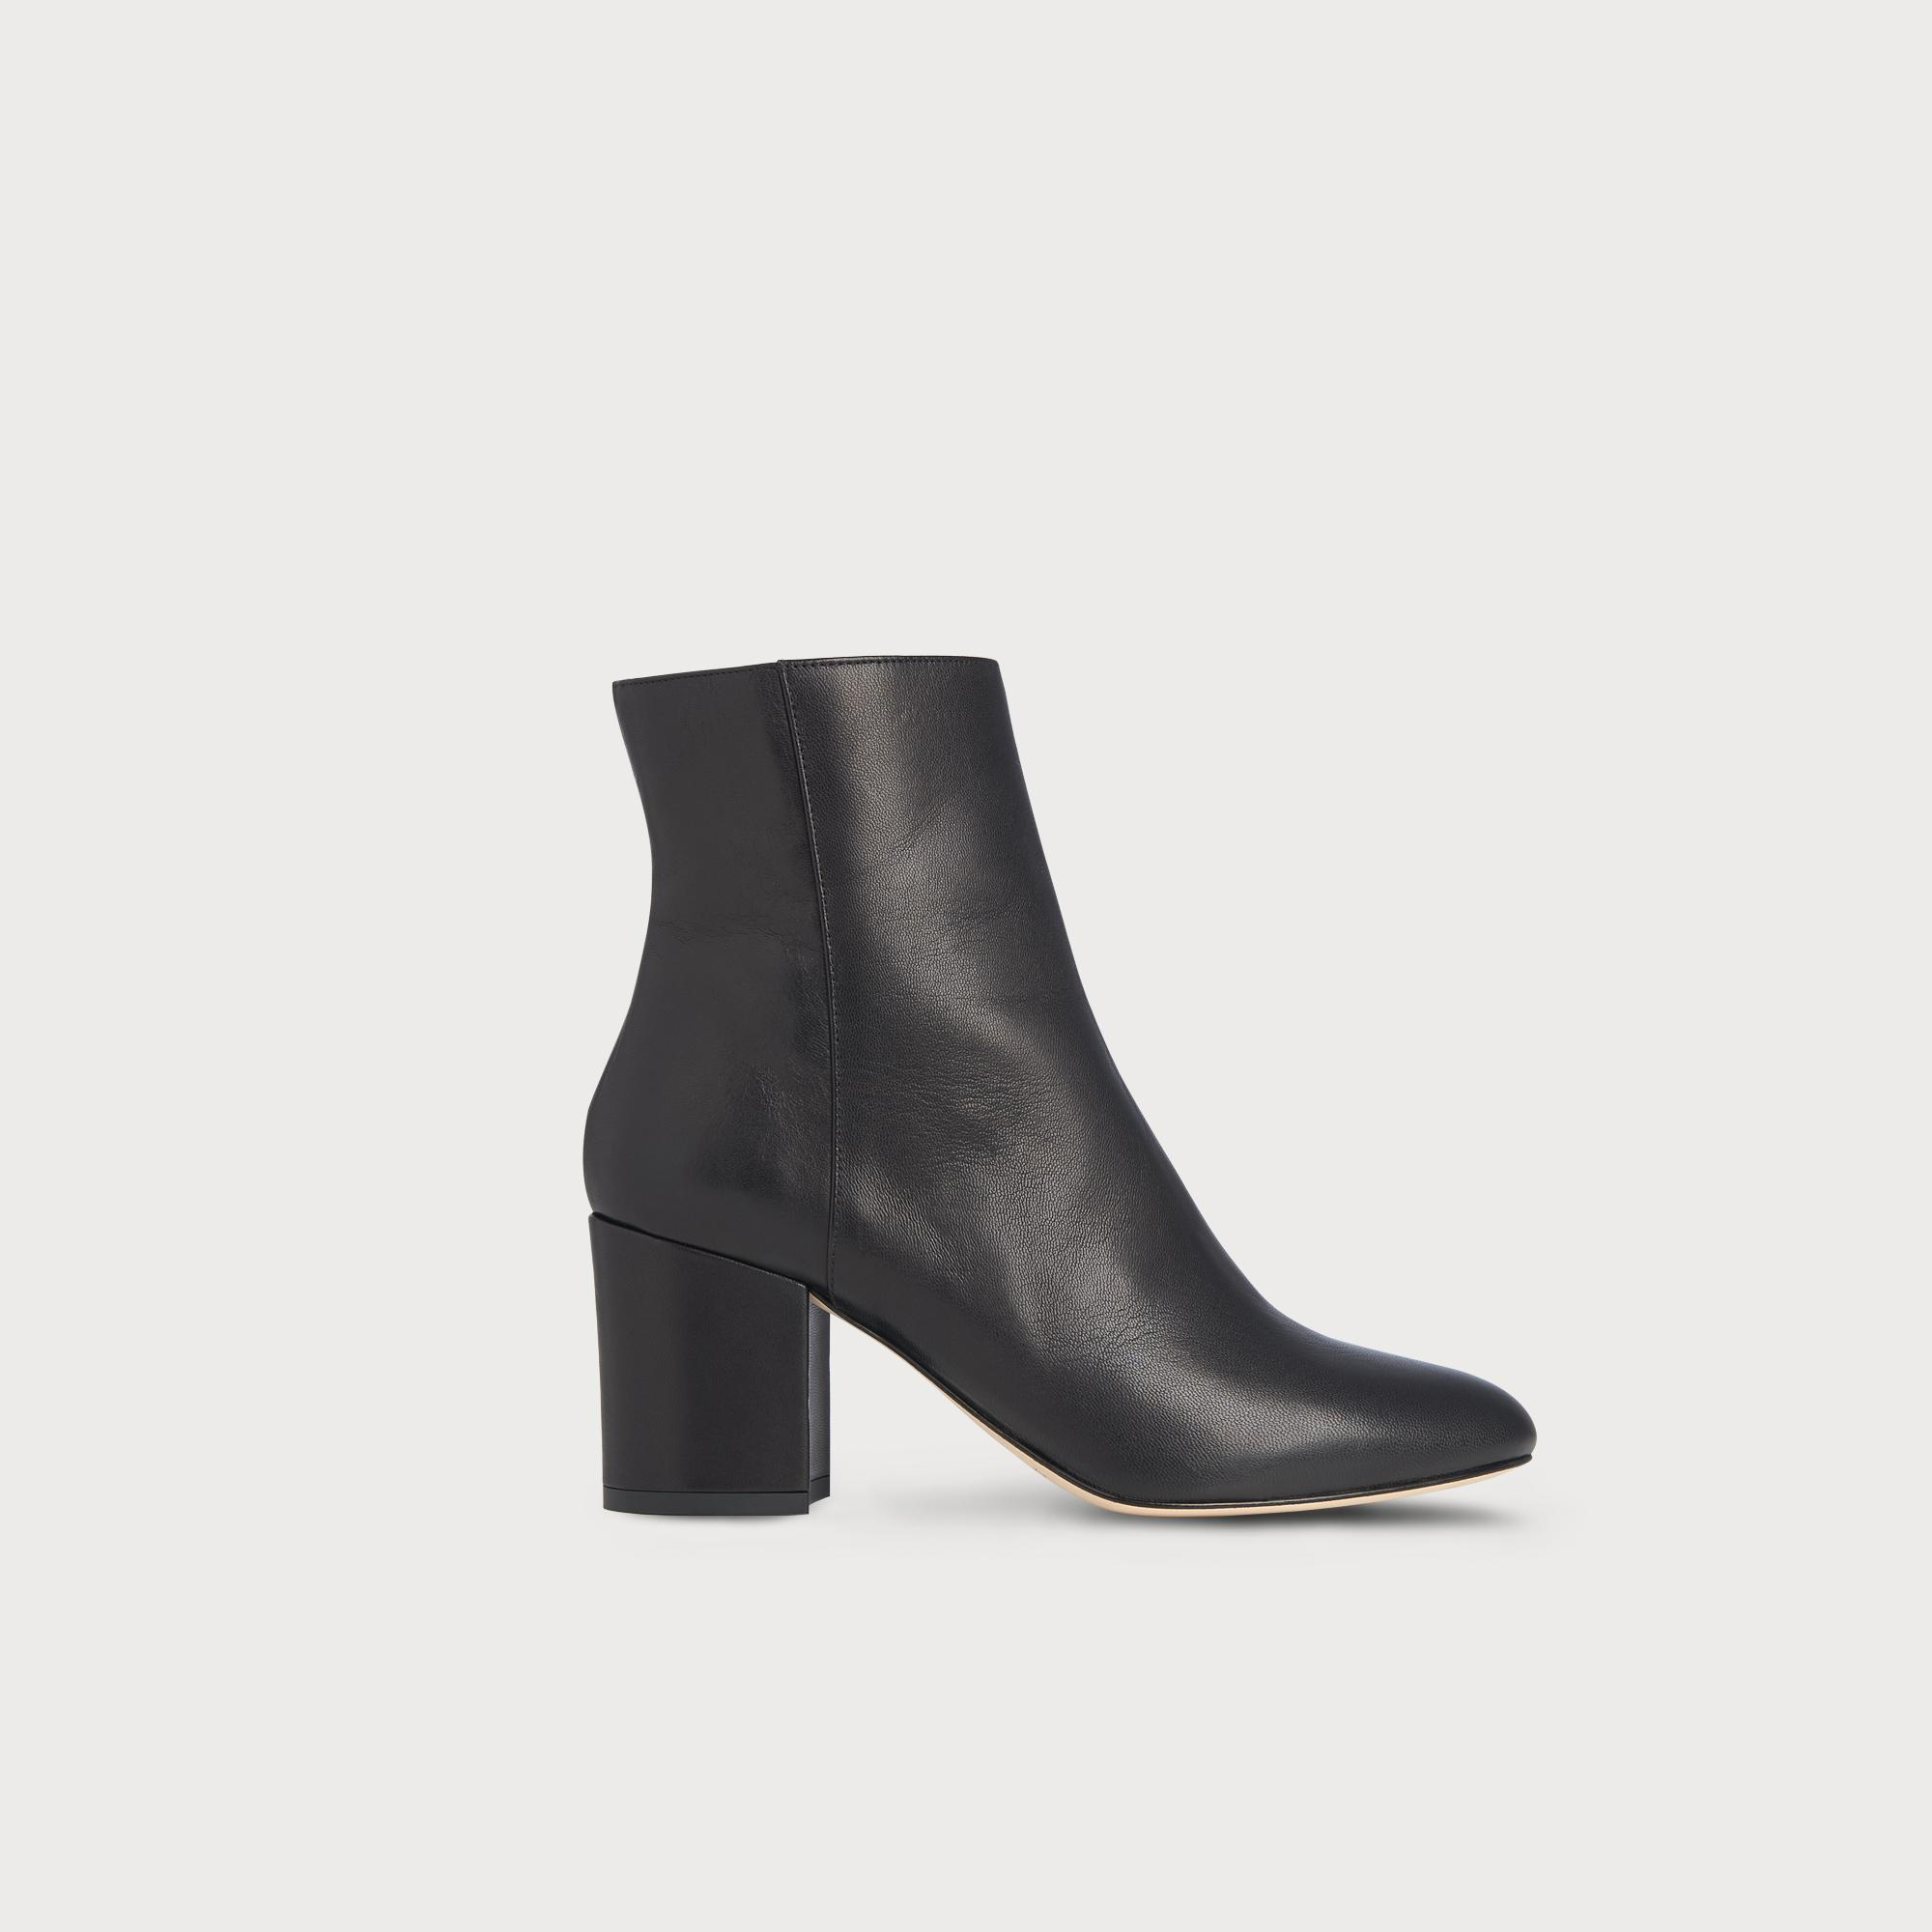 Boots for Women, Booties On Sale in Outlet, Black, Suede leather, 2017, US 9 (EU 39) Ash